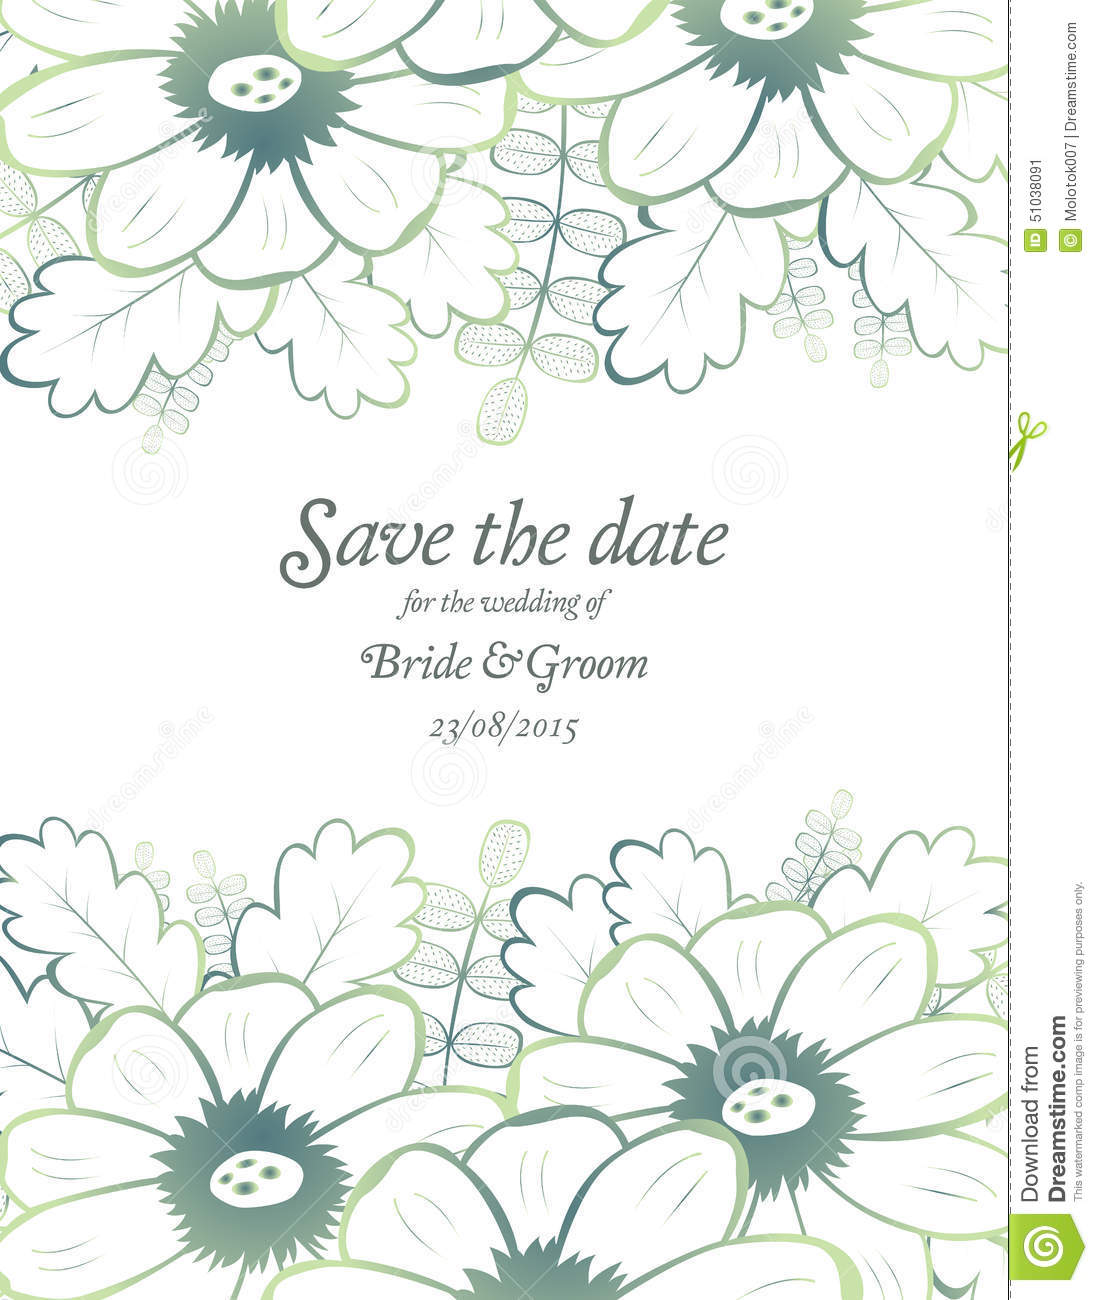 Save The Date Wedding Invite Card Template Vector Image – Invite Card